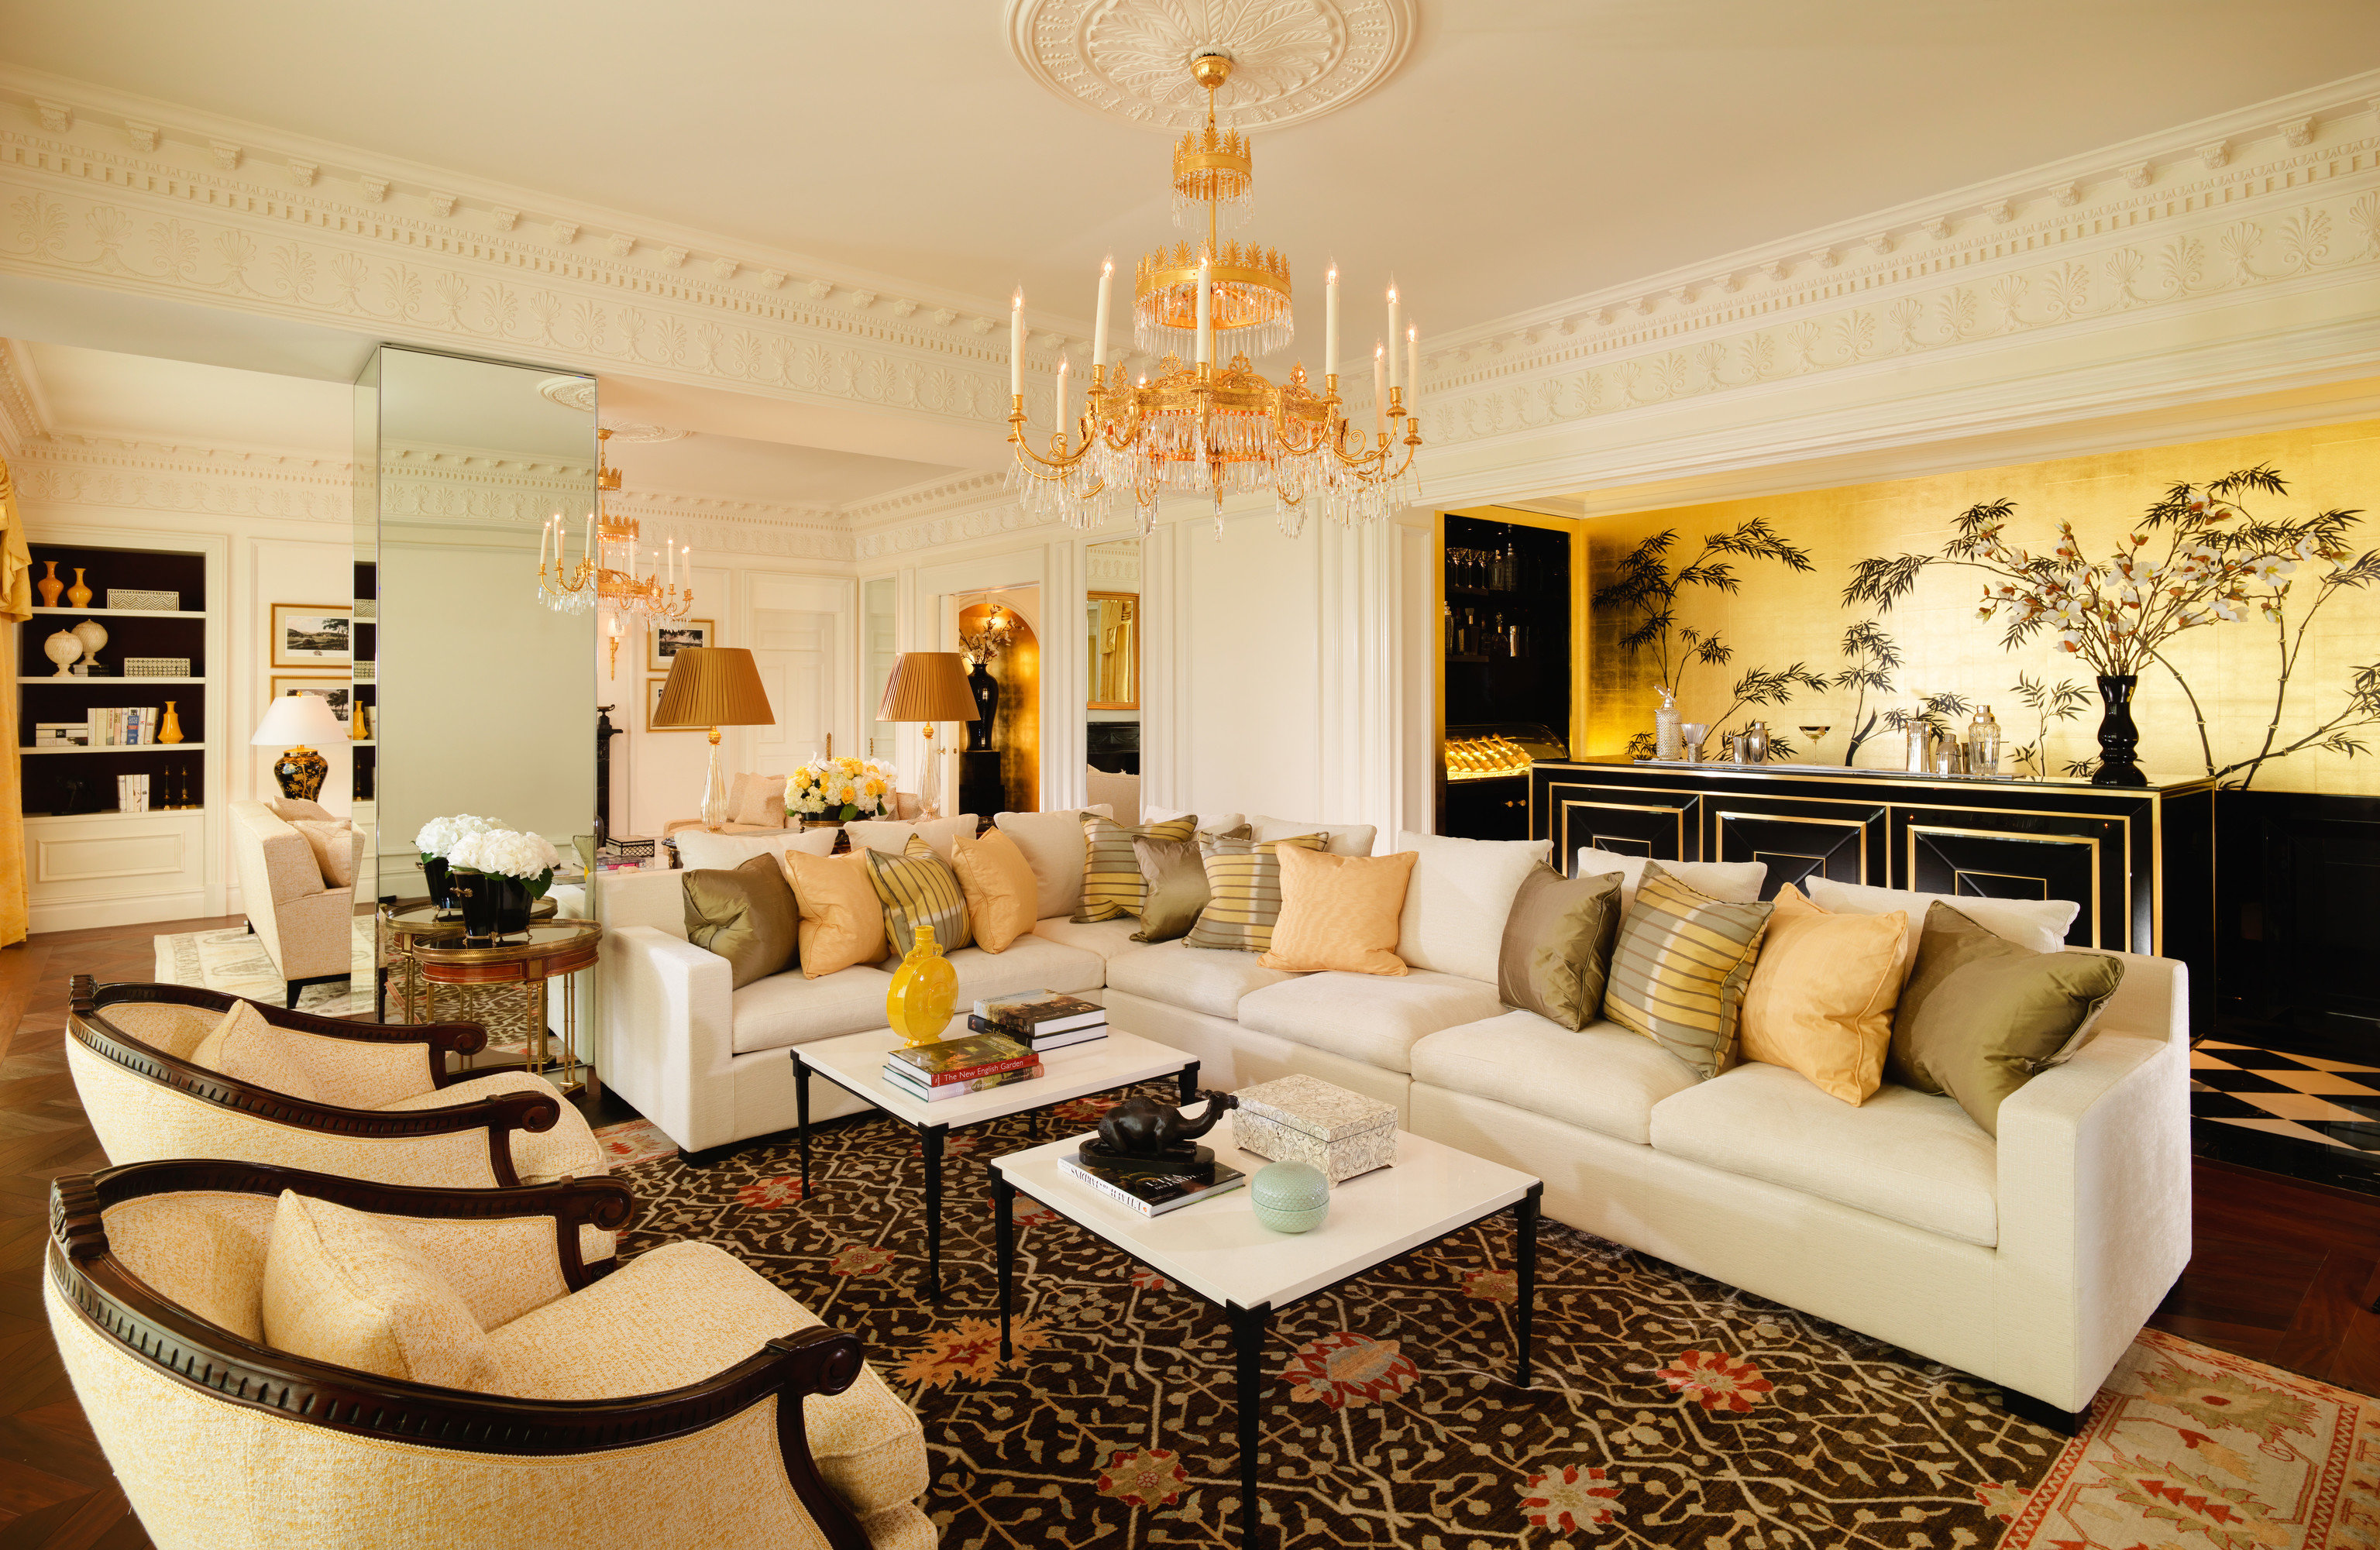 Hotels Luxury Travel indoor wall Living room floor table living room interior design property ceiling home furniture real estate Suite interior designer Lobby couch decorated several